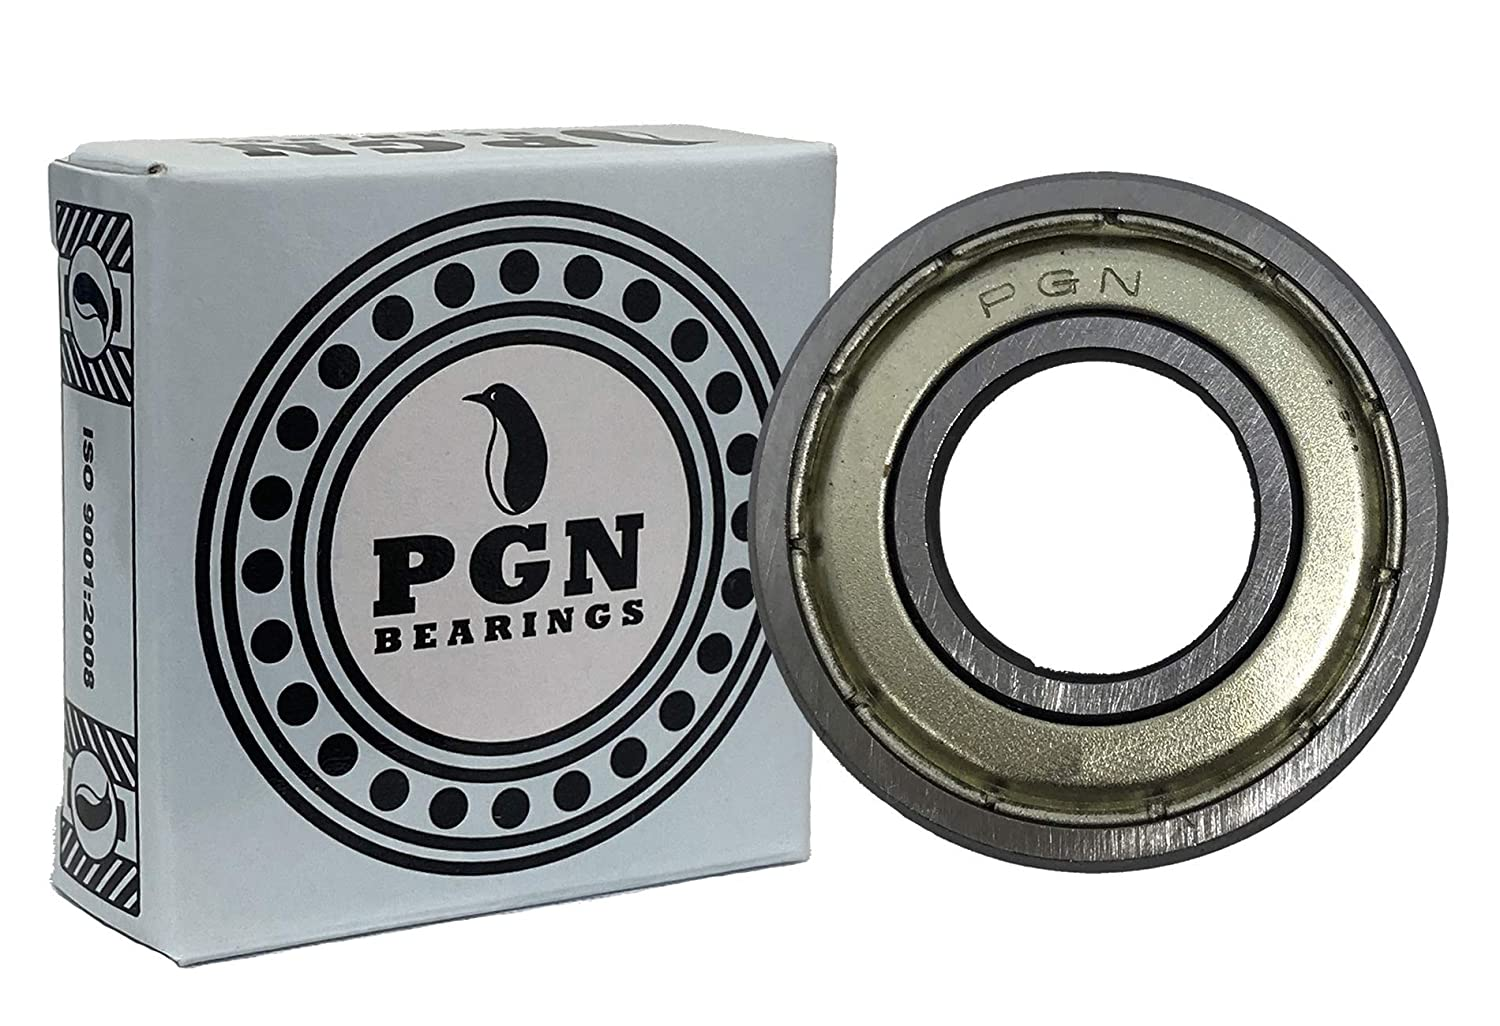 """(10 Pack) PGN - R4-ZZ Shielded Ball Bearing - 1/4""""x5/8""""x0.196"""" - Lubricated - Chrome Steel"""